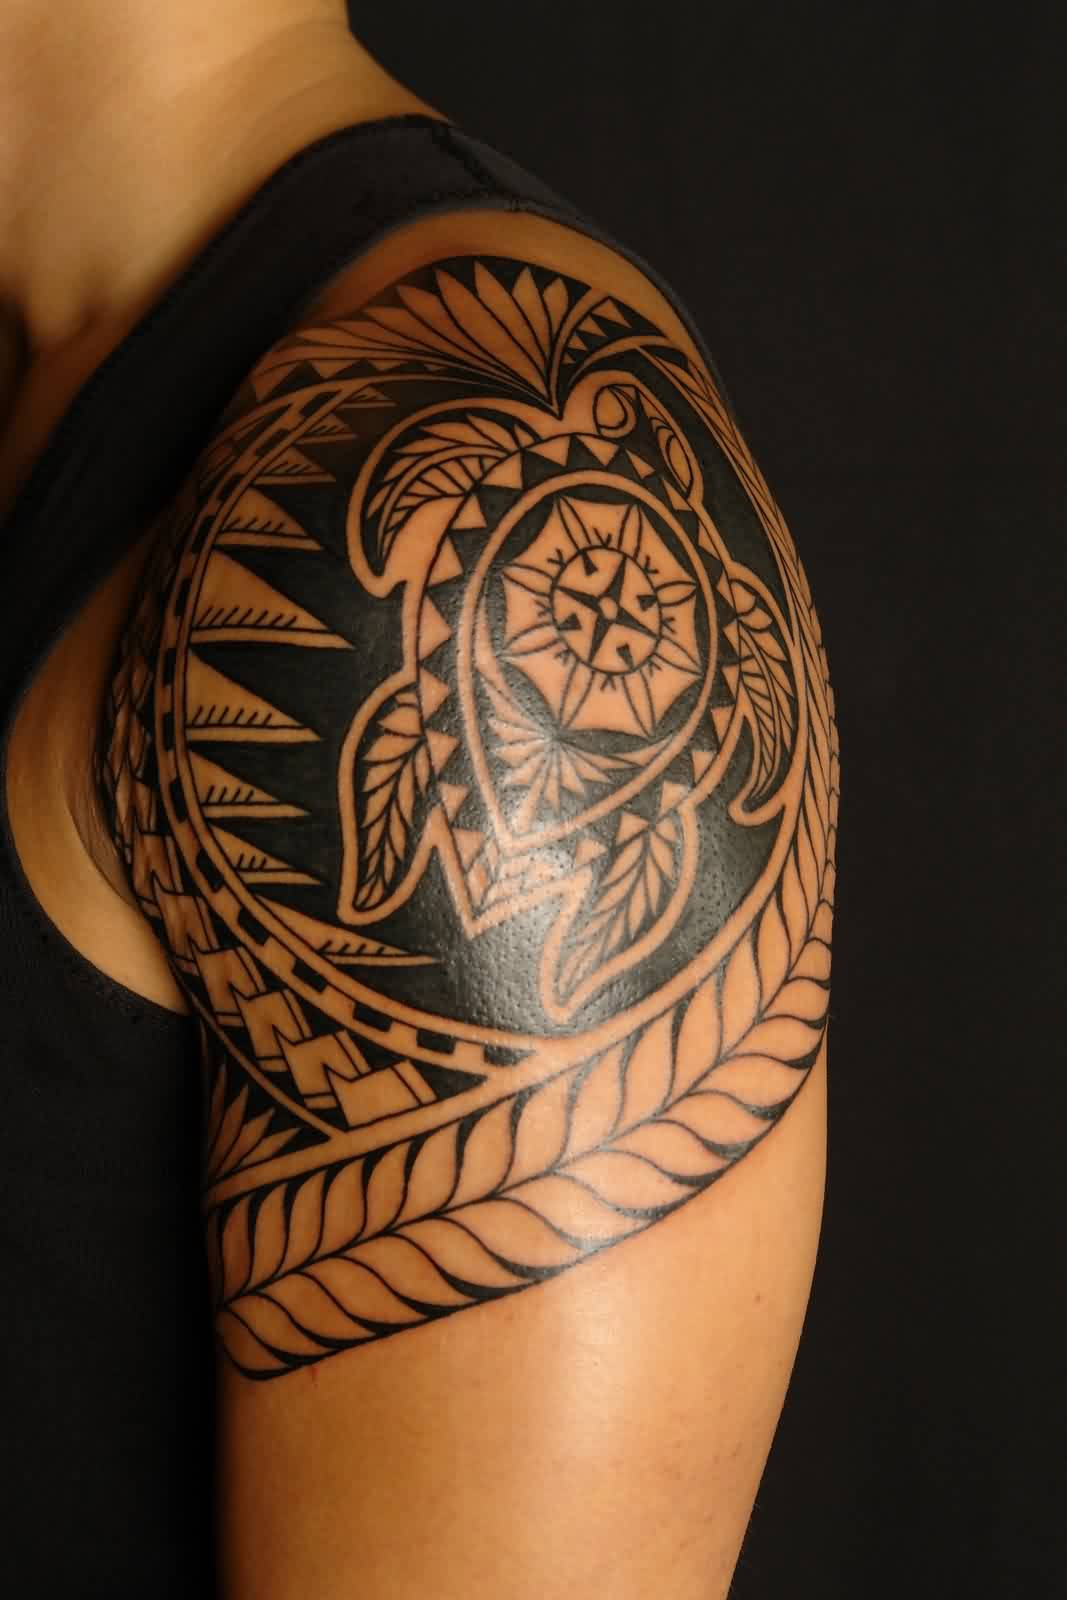 Impressive Black Polynesian Turtle Tattoo On Shoulder